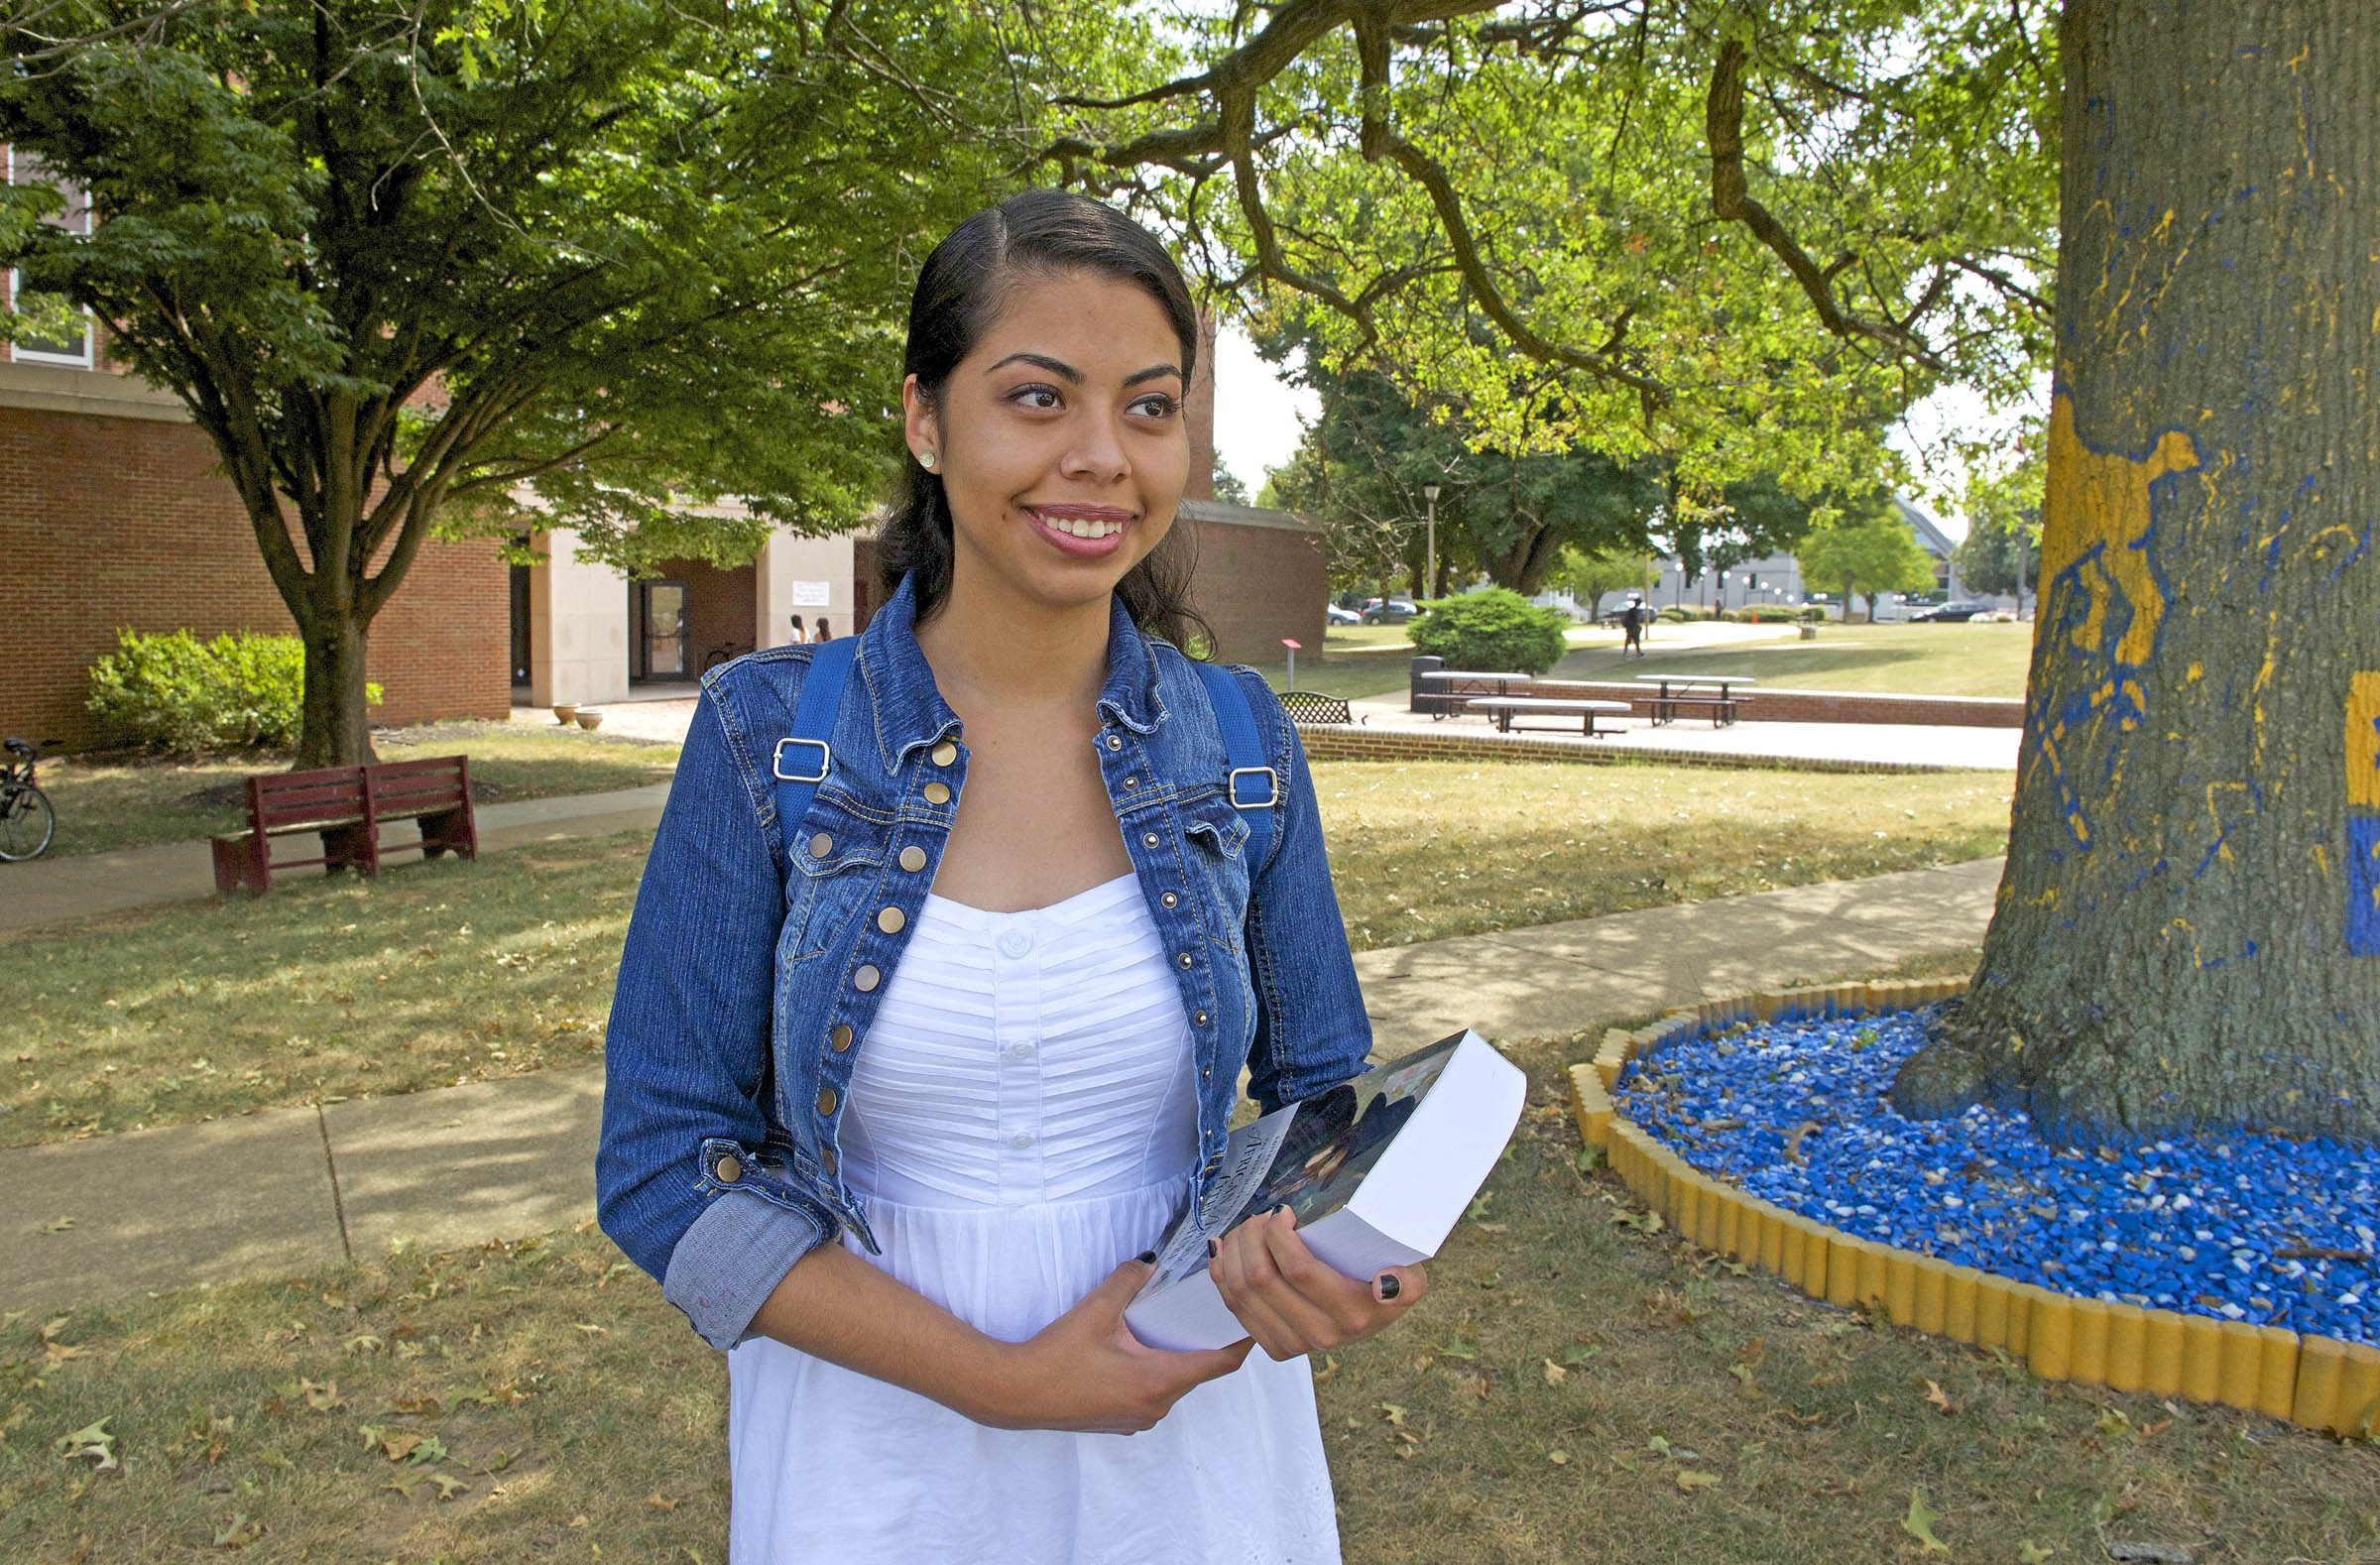 """Now in college, Jessica Osornio says she continues to be concerned by how Latino students are treated in Richmond schools. """"It's overwhelming to start over and be in a school that discriminates,"""" she says. """"You can't speak up. You can't communicate with others."""" - SCOTT ELMQUIST"""